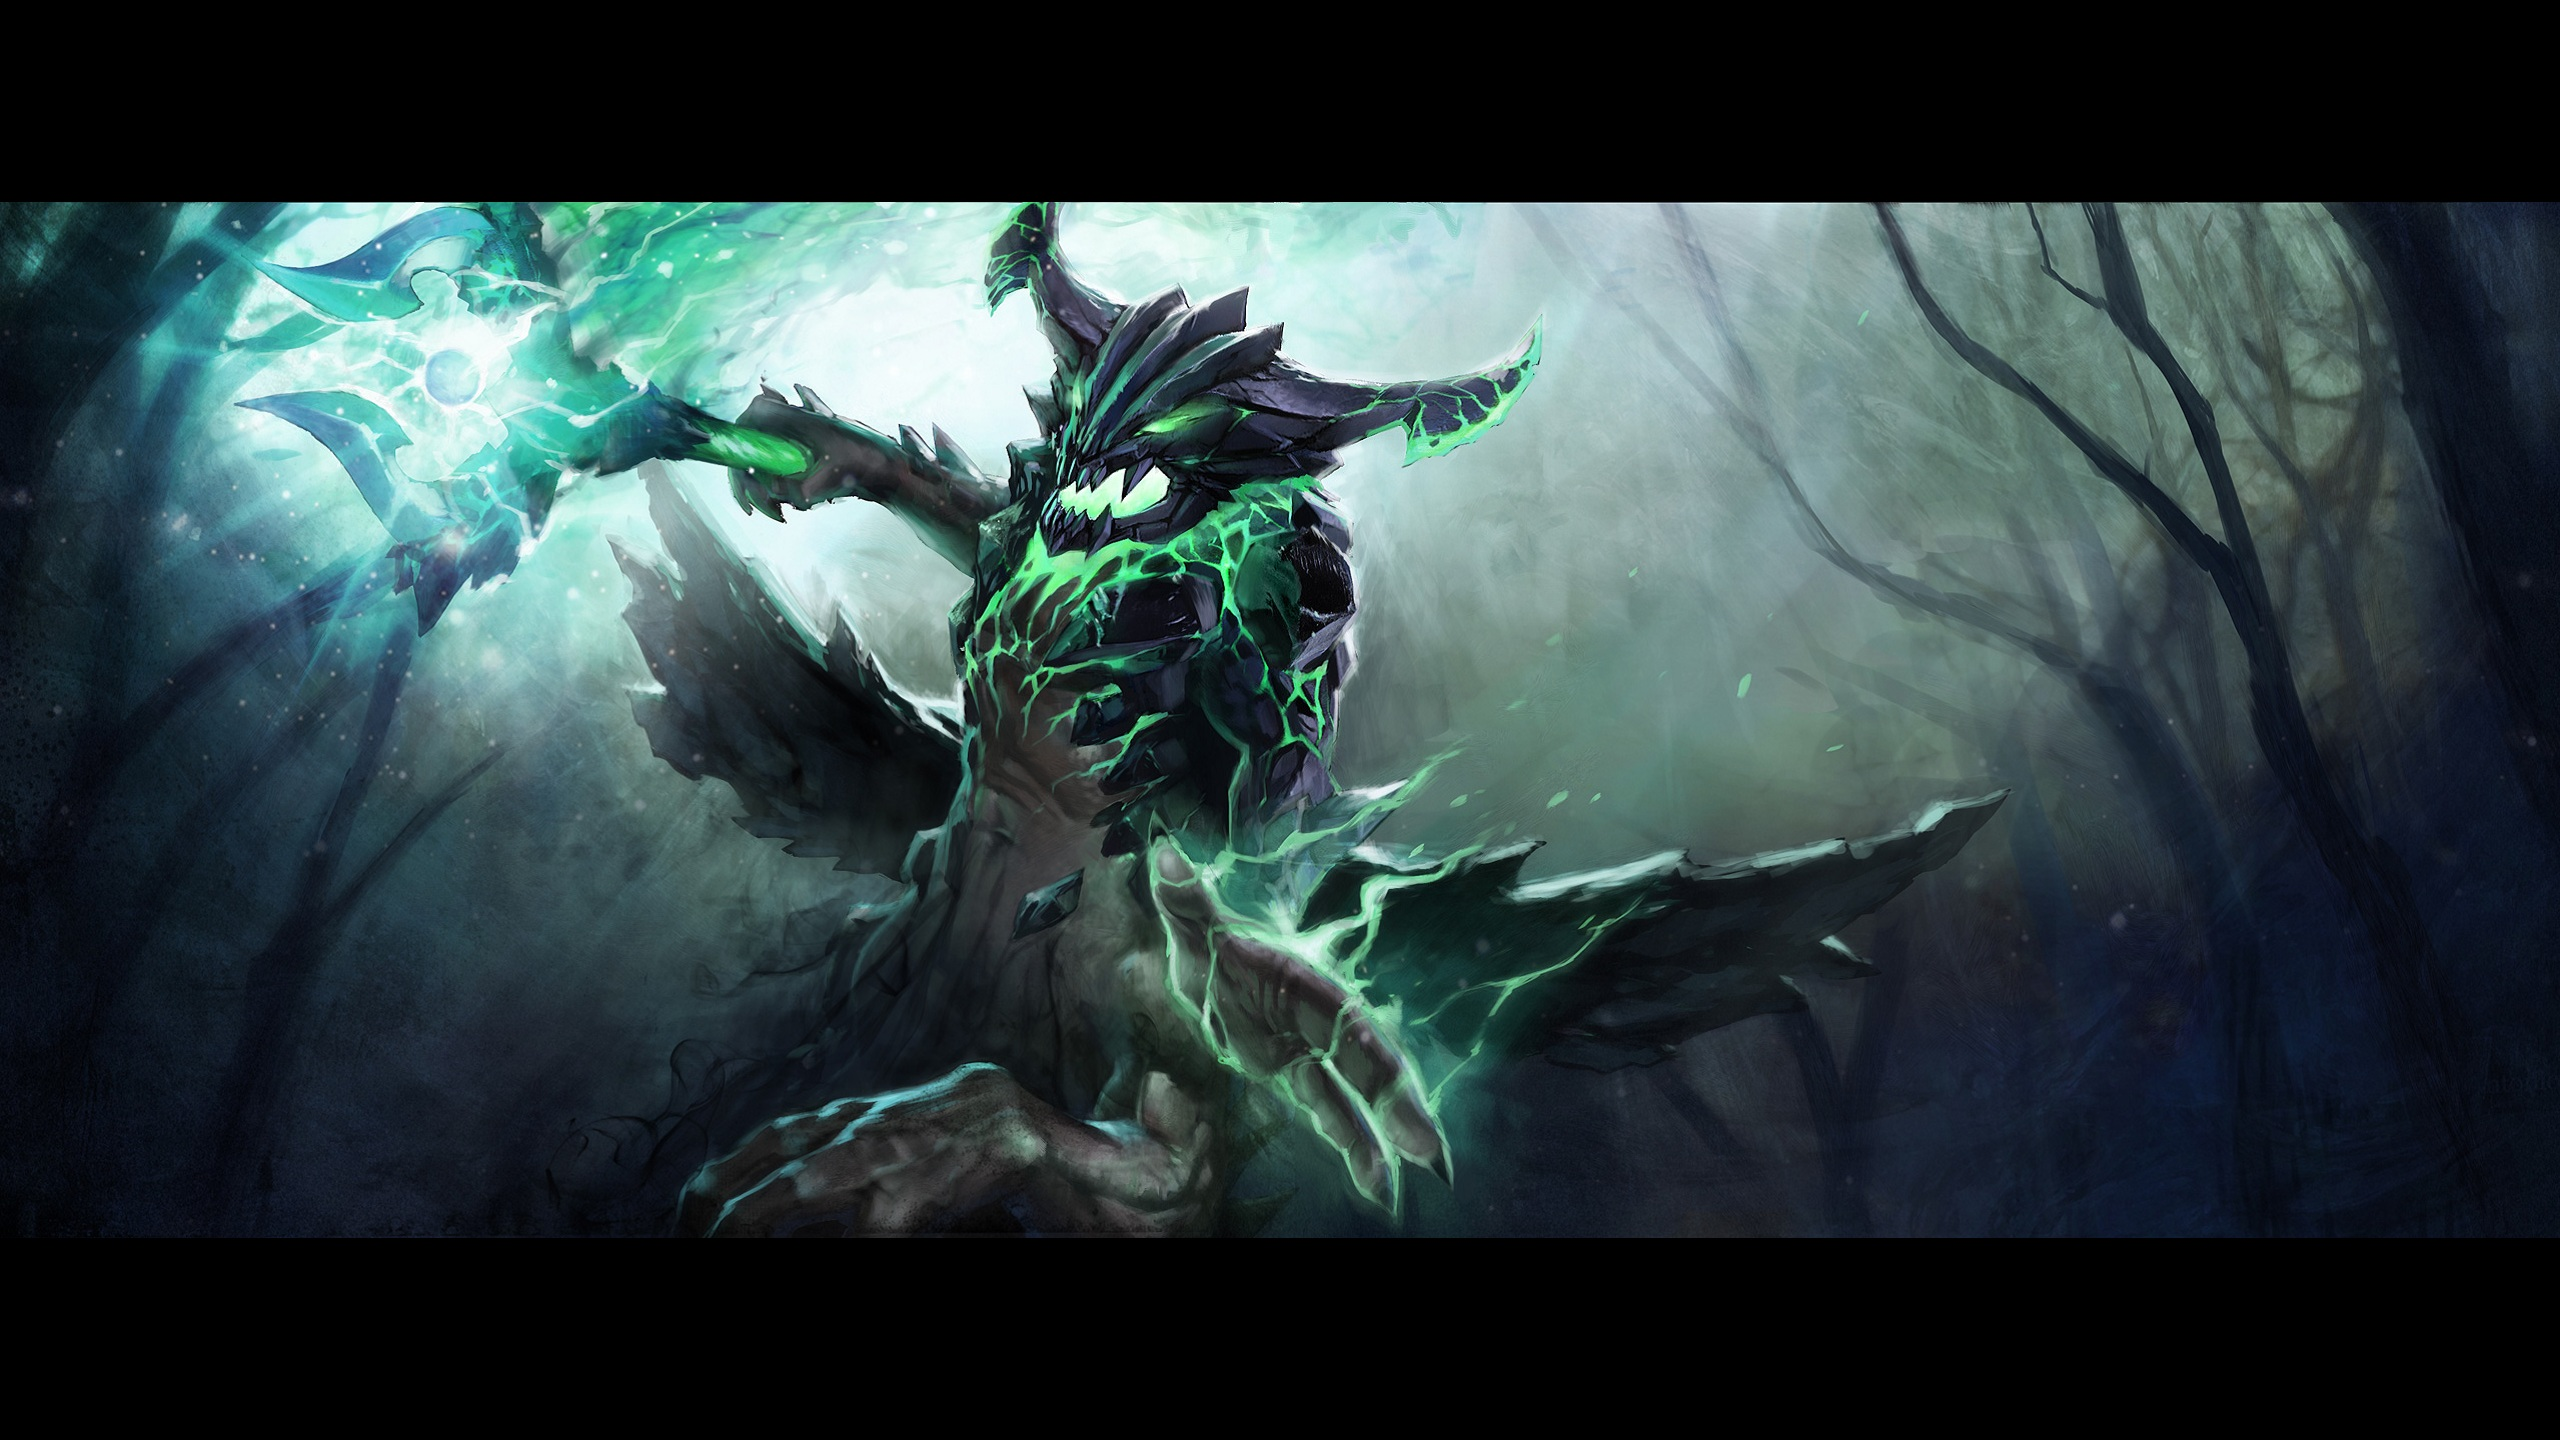 ... Coders | Wallpaper Abyss Everything Dota Video Game DotA 2 384022